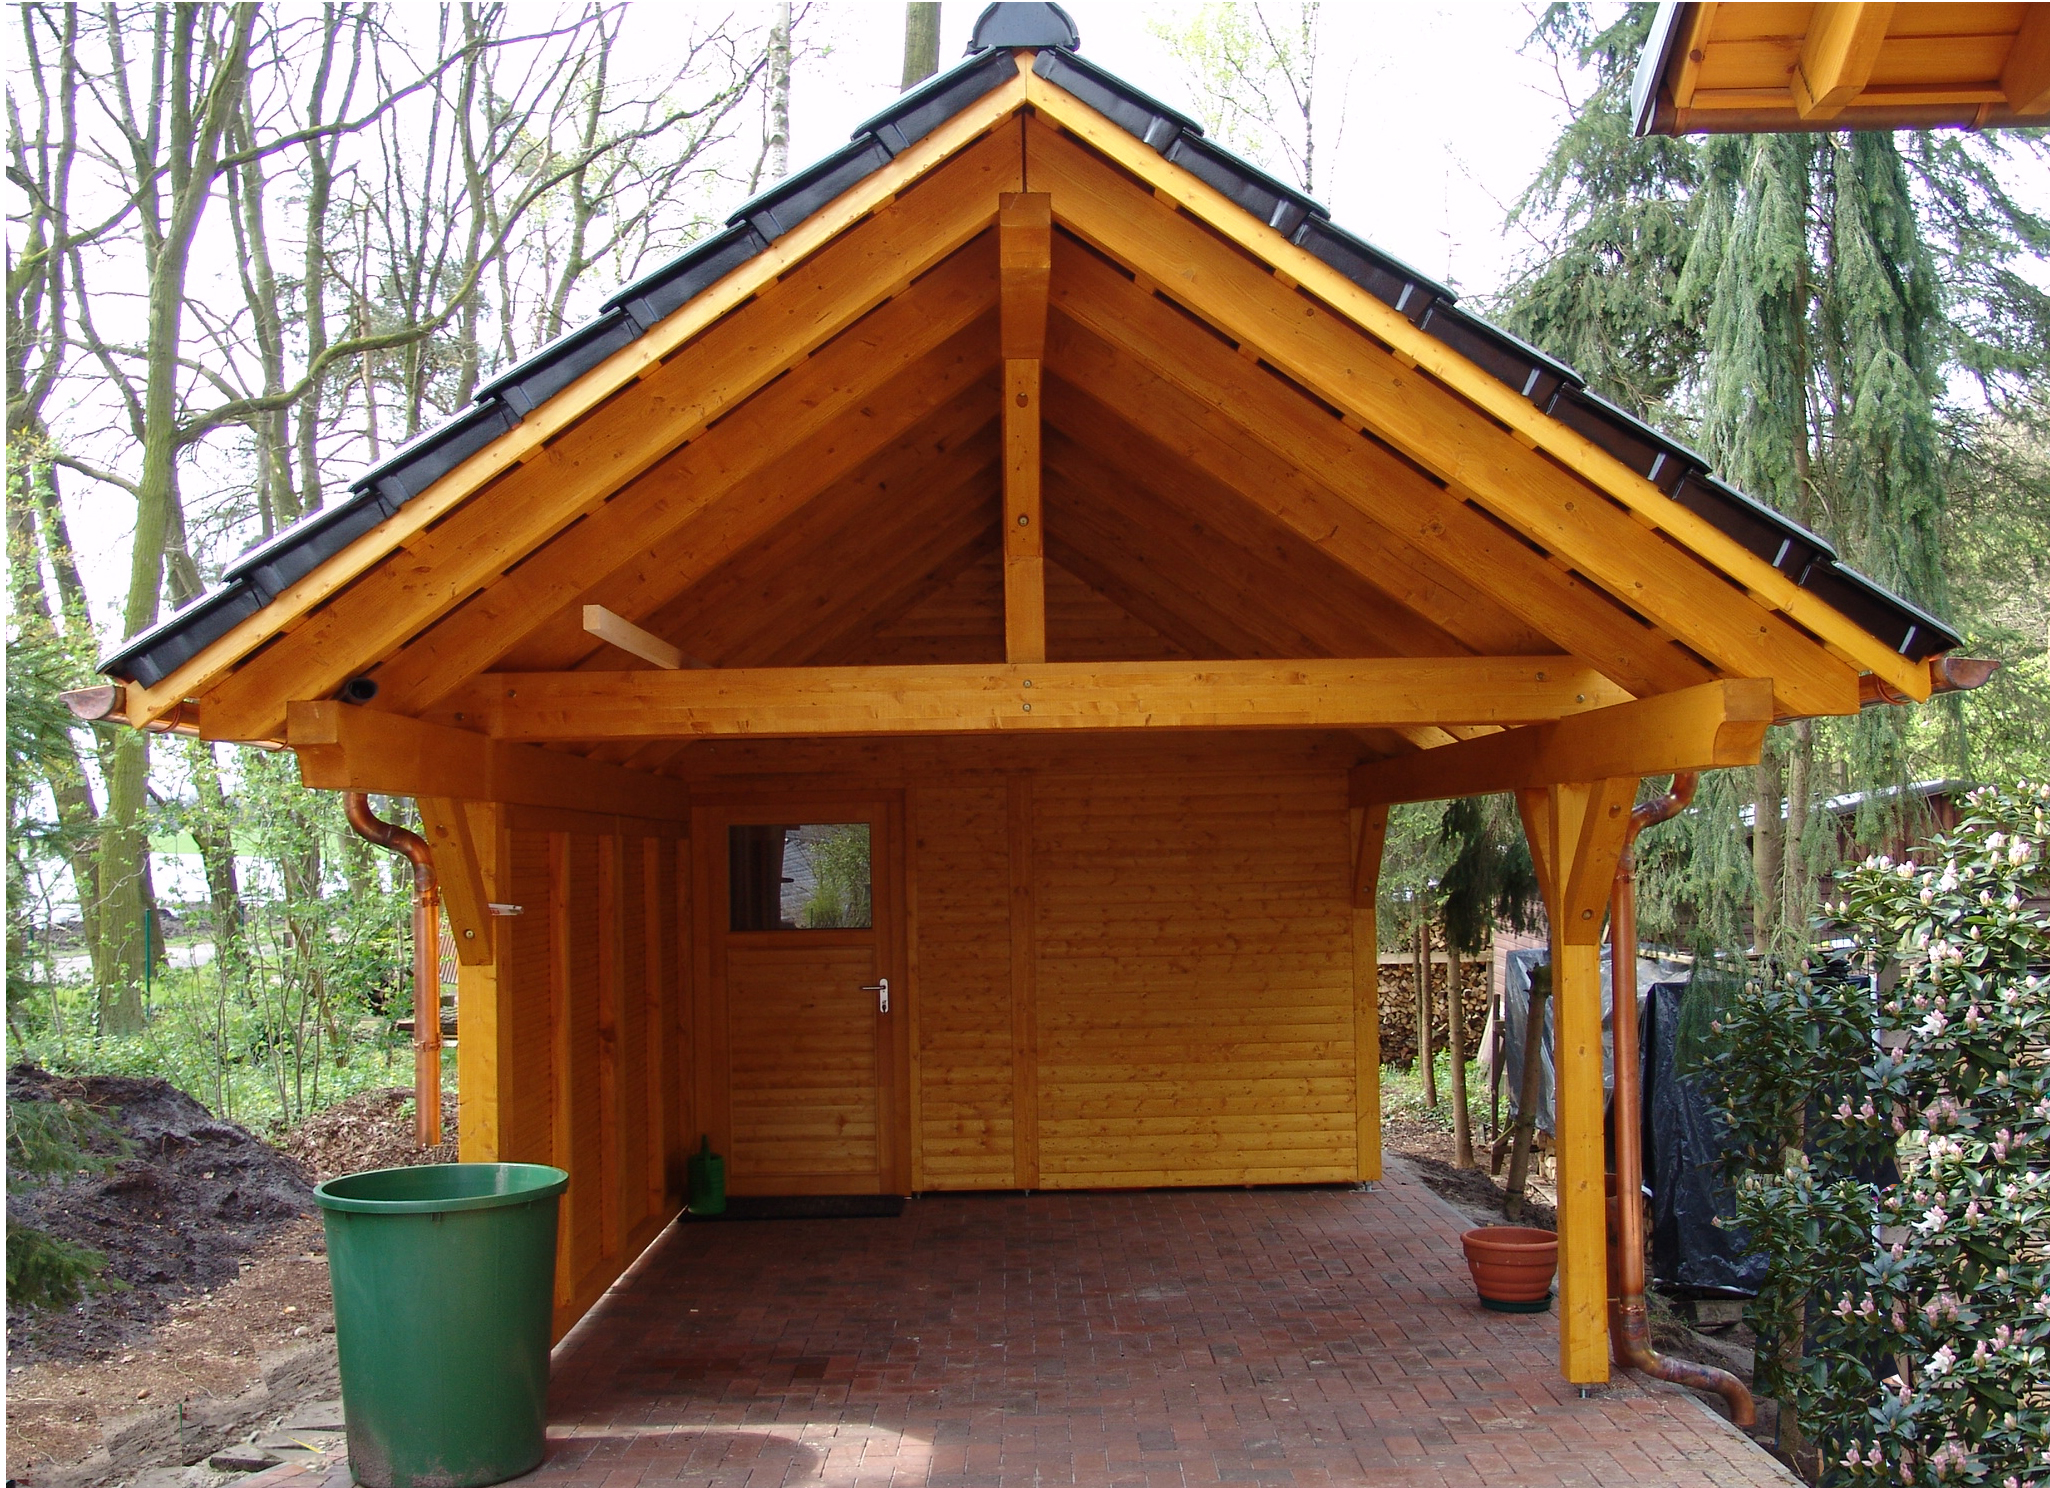 Gartenhütte Holz Single Carport - Bsh Saddle Roof - Garden House Wood Shop